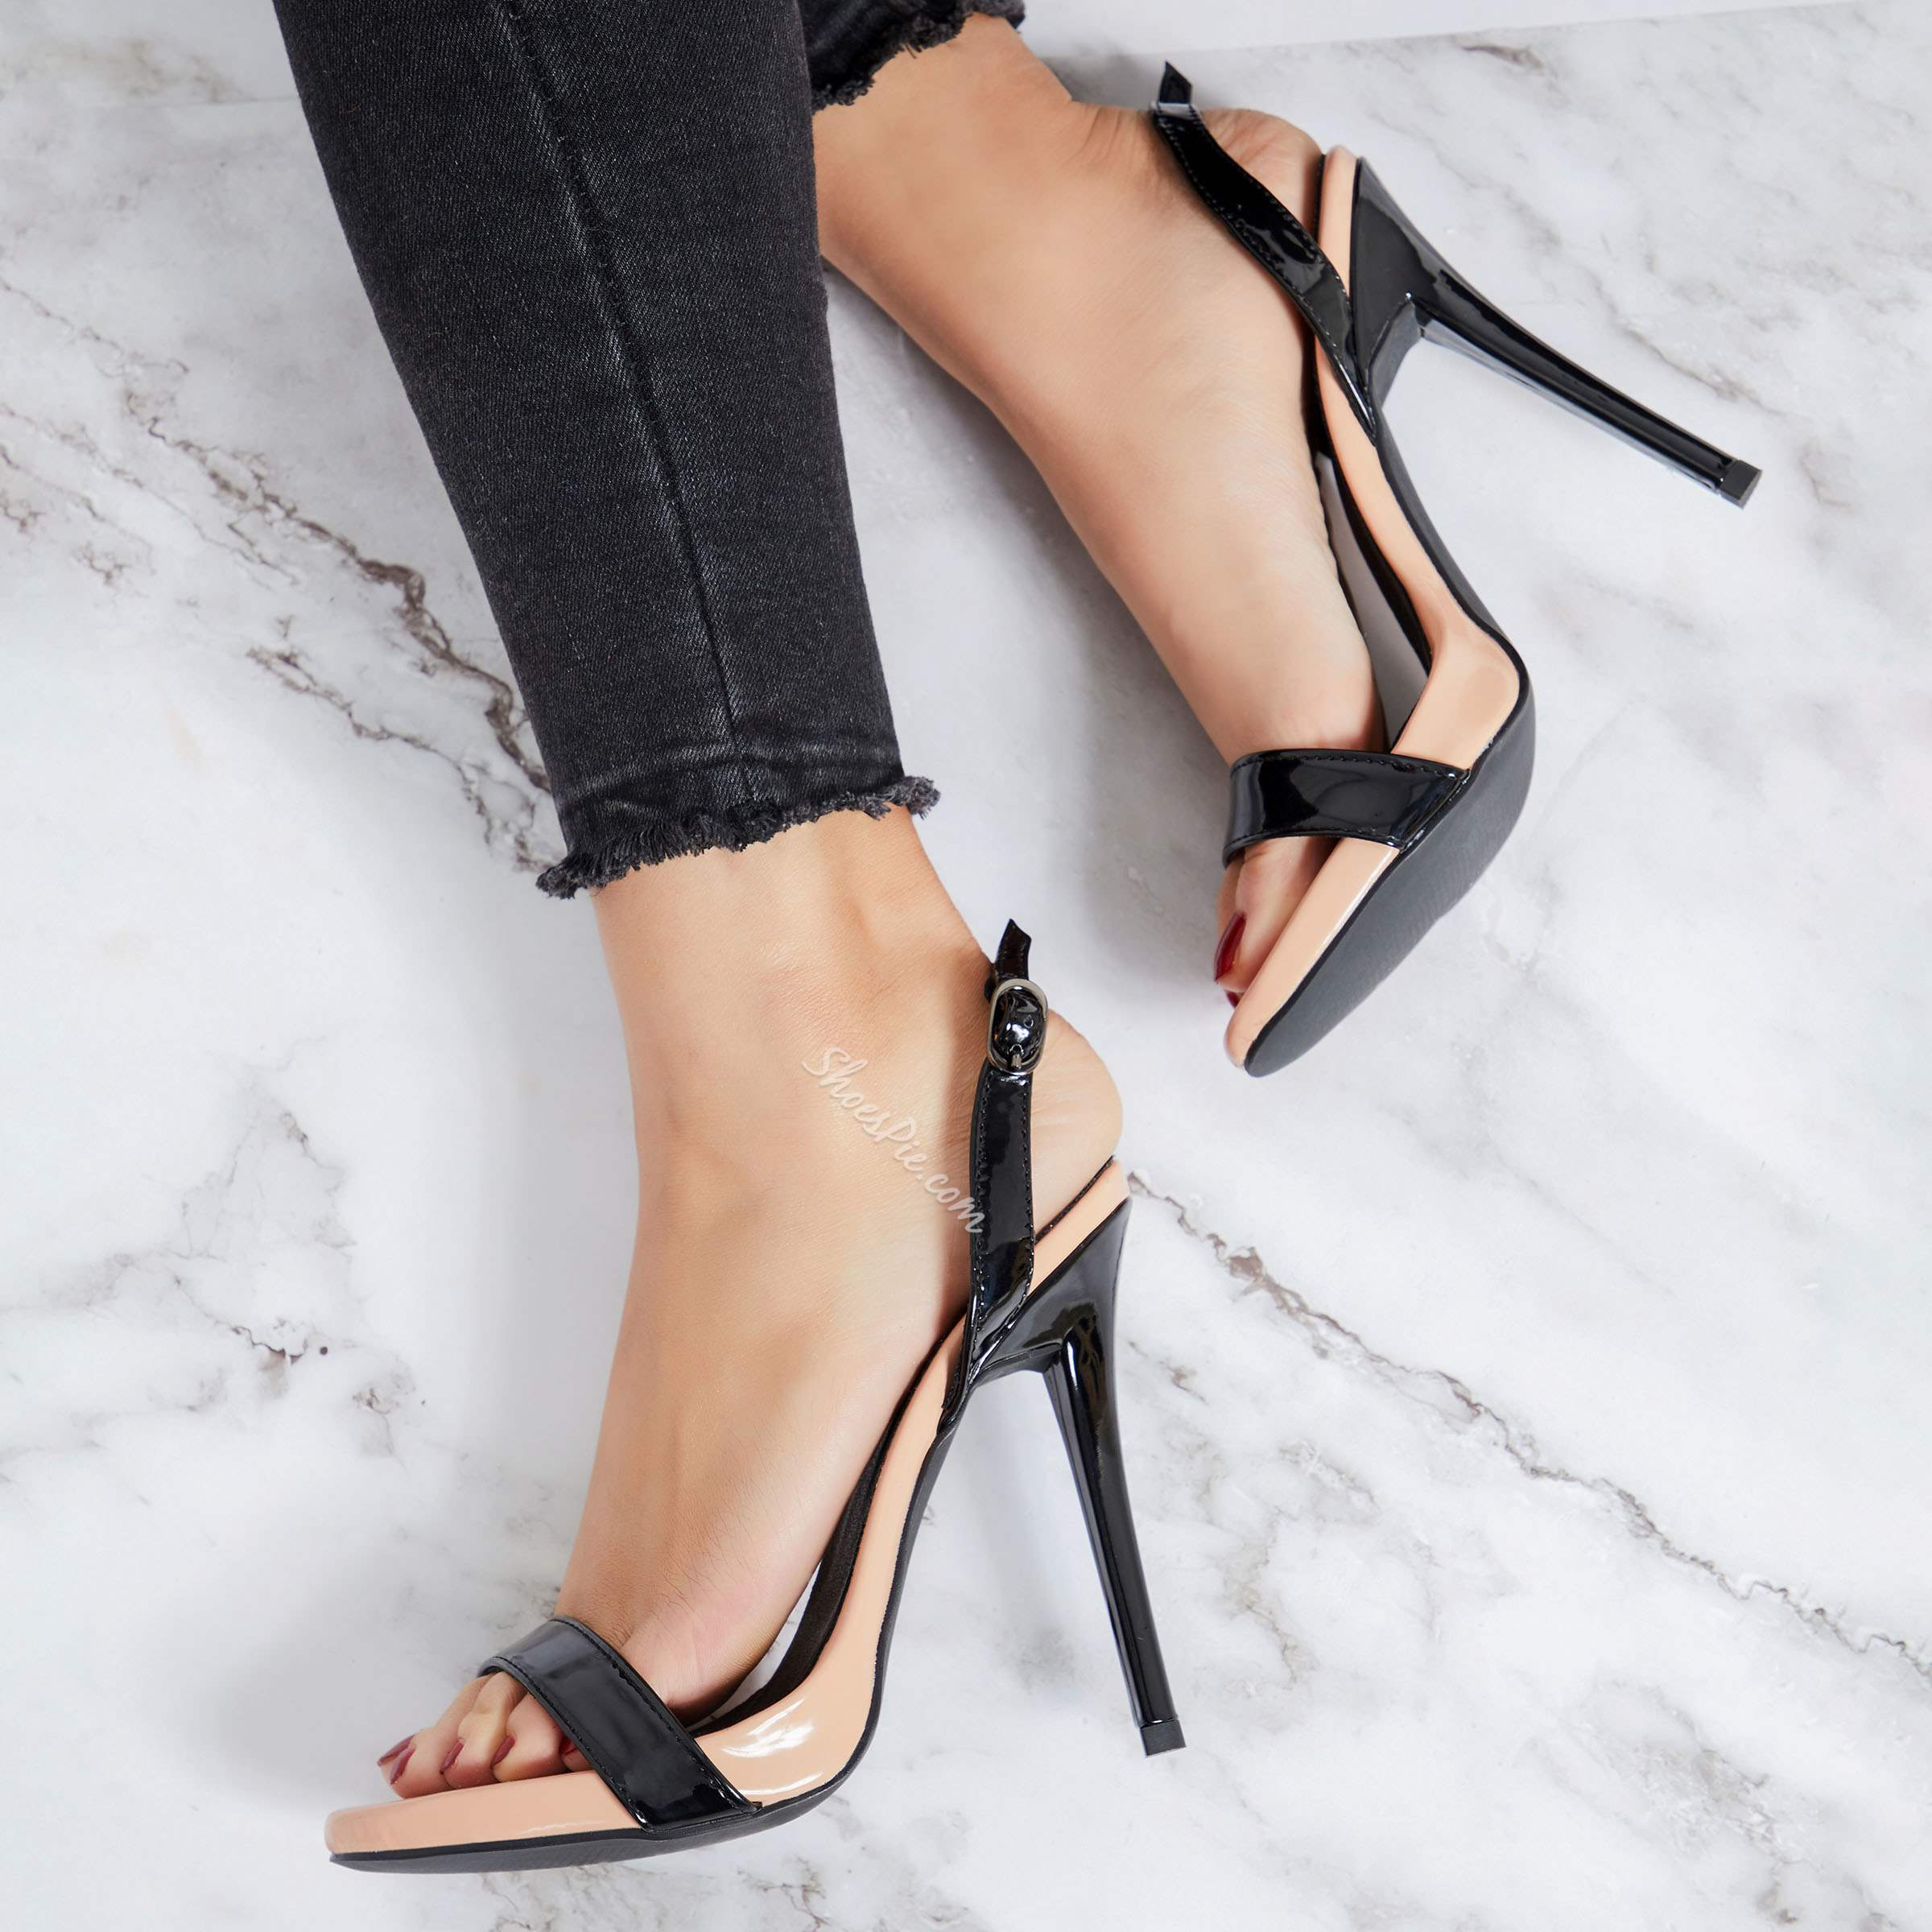 Simple Banquet Slingback Strap Stiletto Heels